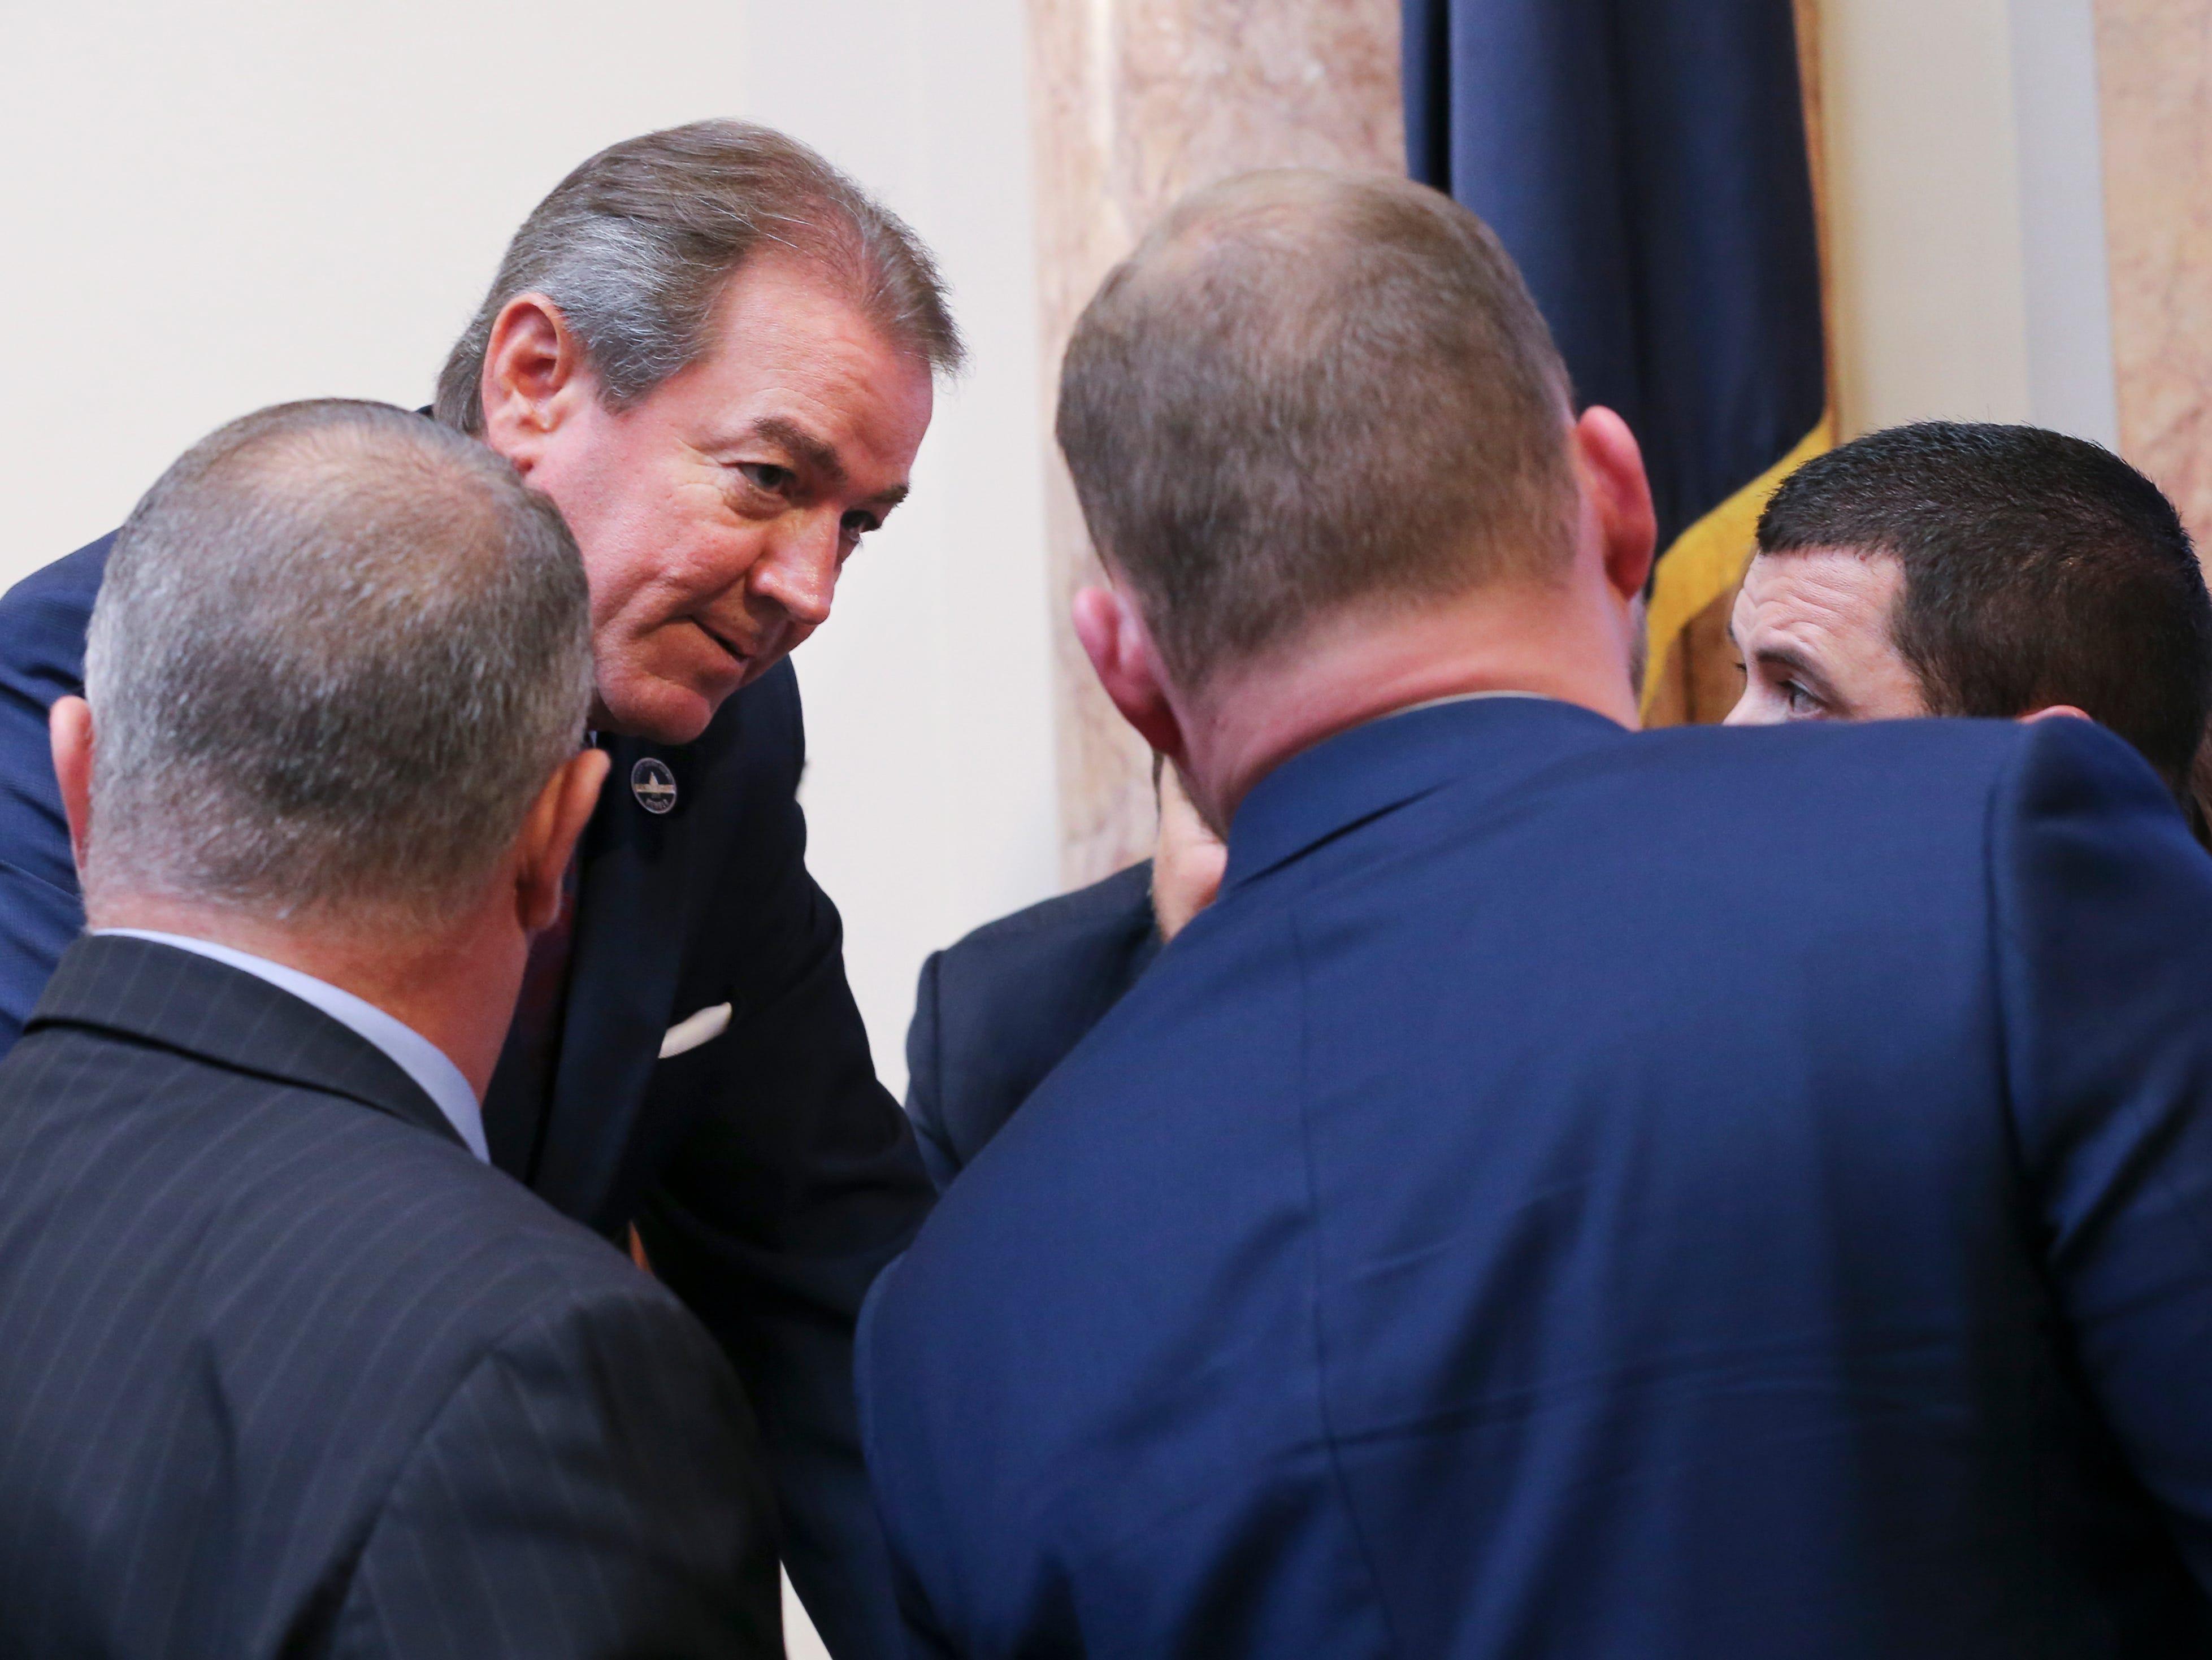 House Speaker David Osborne huddled with members before a committee was formed to investigate the disputed House seat for Jim Glenn who was elected to the House seat for Owensboro by one vote.  Jan. 8, 2019